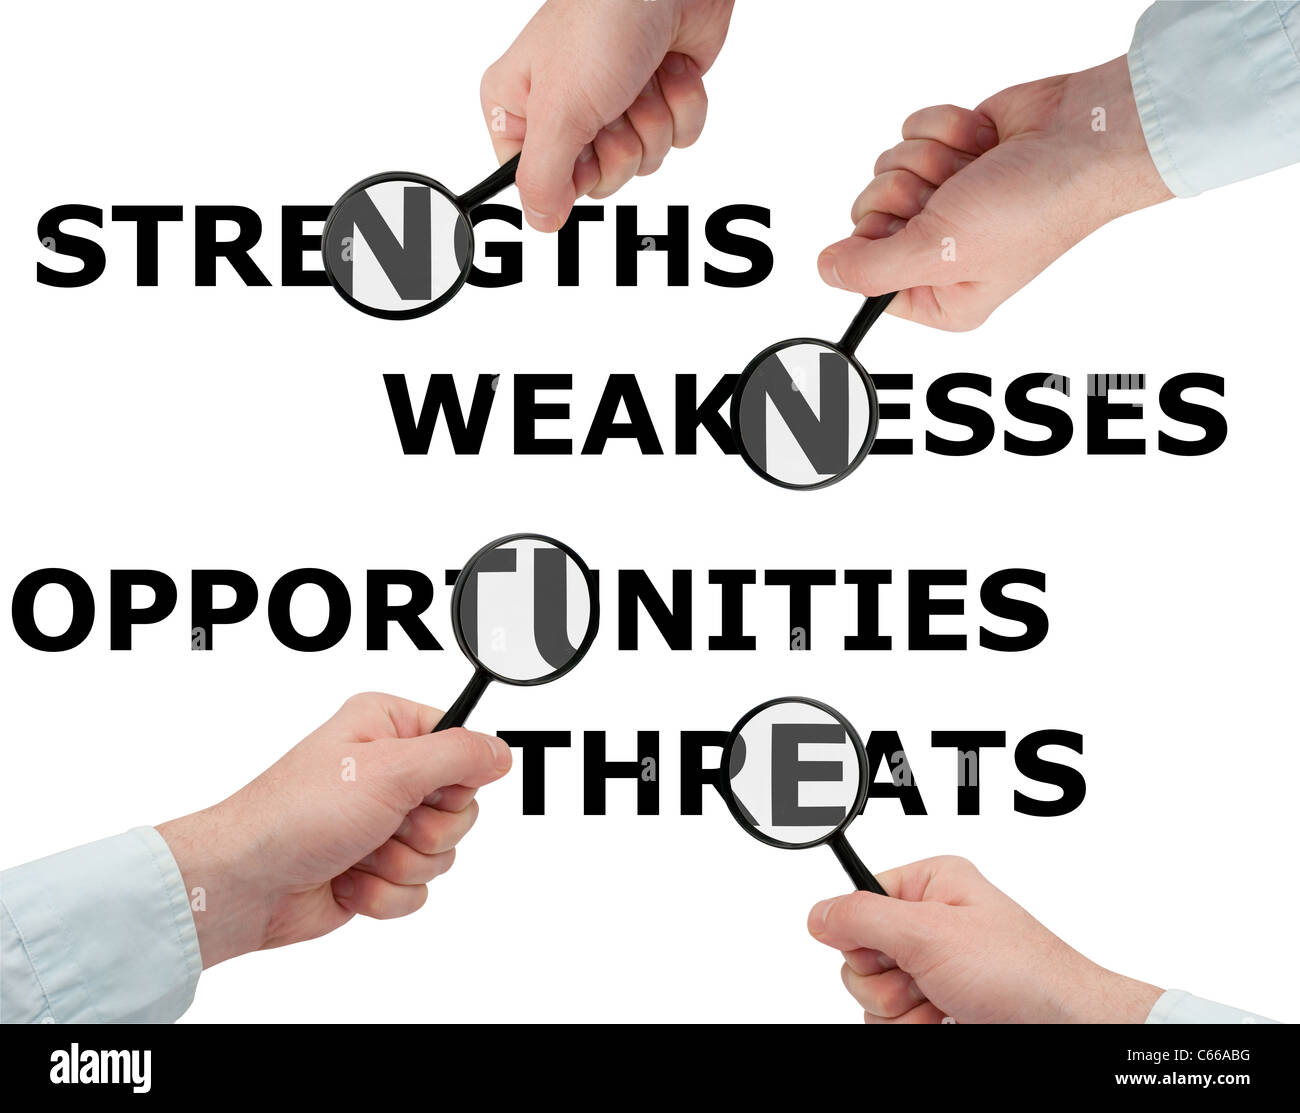 SWOT Analysis - Man's Hand Holding Magnifying Glass and Strengths / Weaknesses / Opportunities / Threats Sign - Stock Image